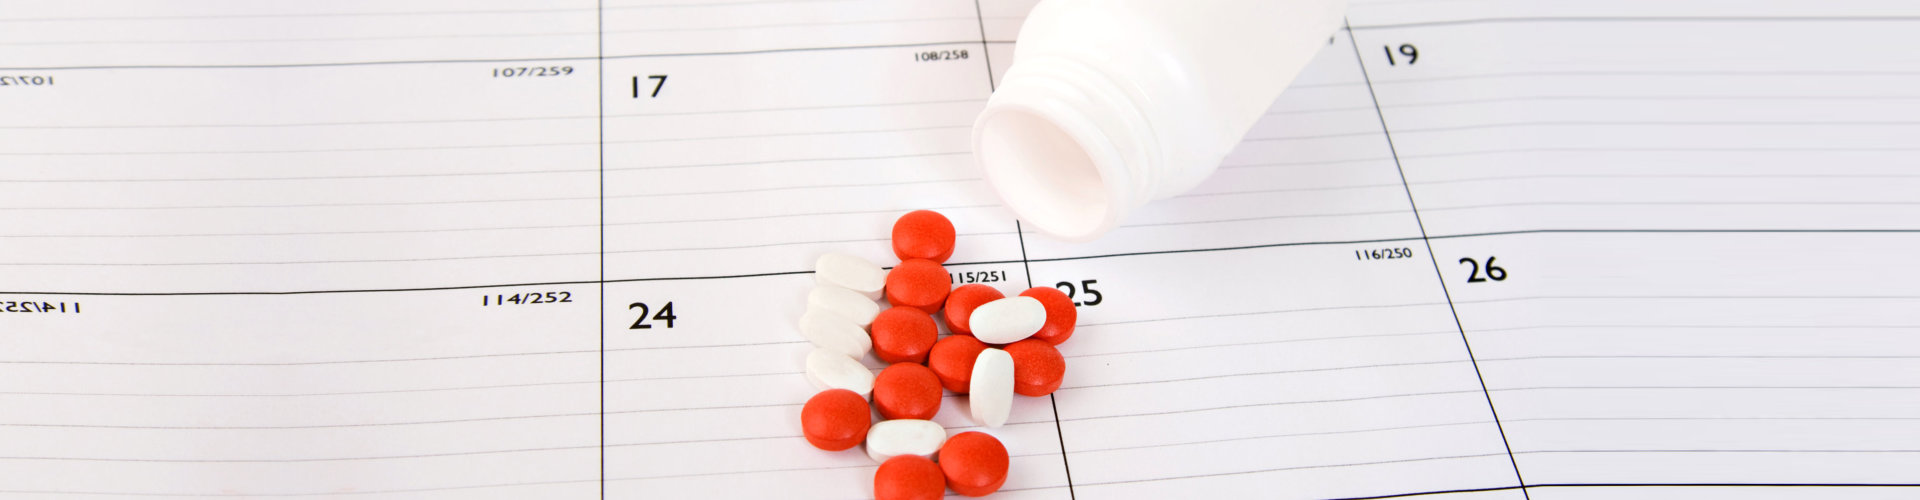 orange and white tablets